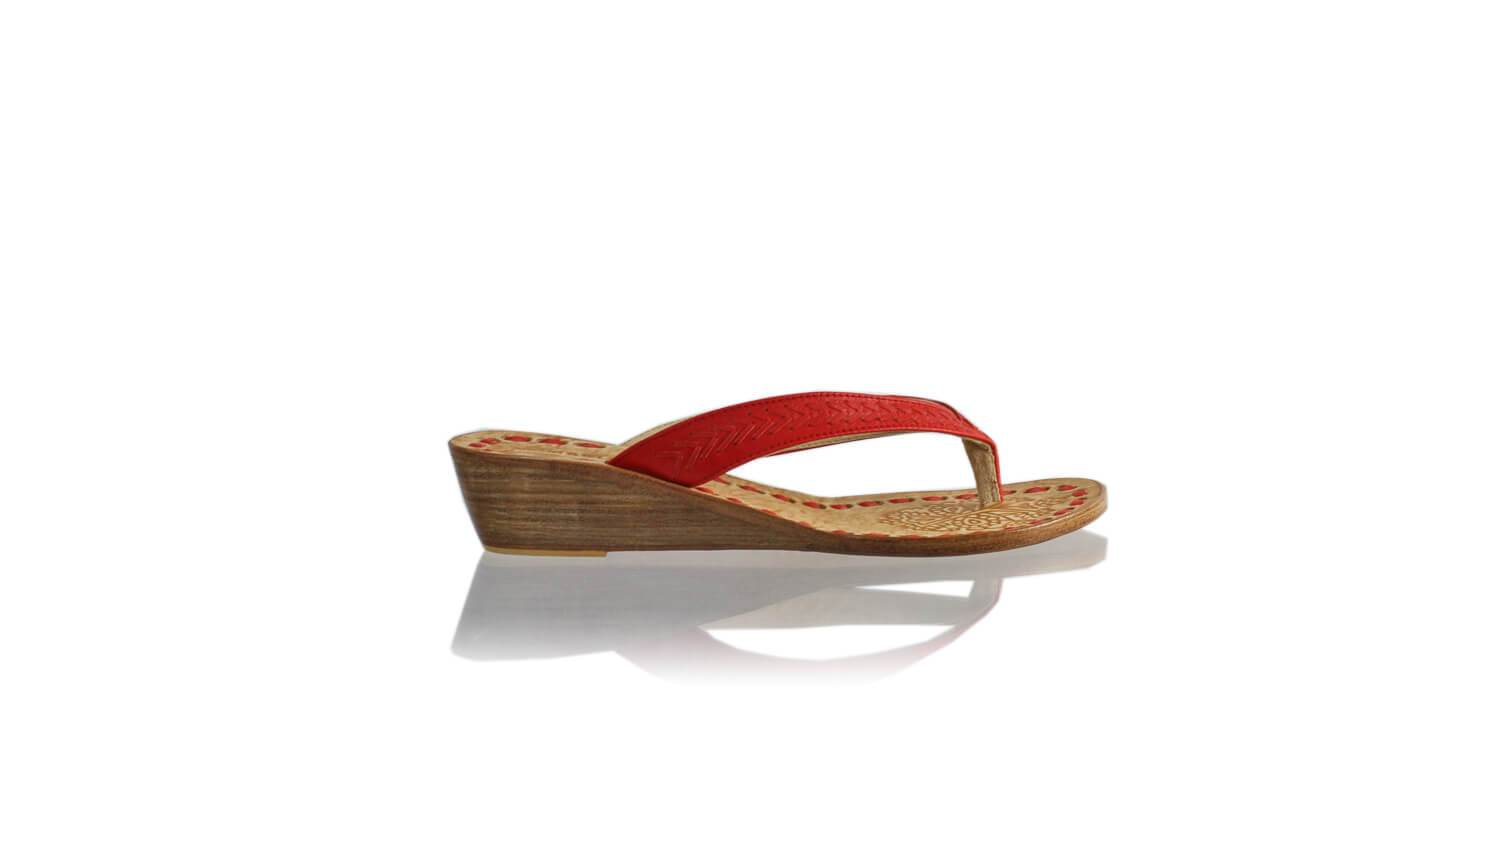 Leather-shoes-Ayu 35mm Wedges - Red-sandals flat-NILUH DJELANTIK-NILUH DJELANTIK